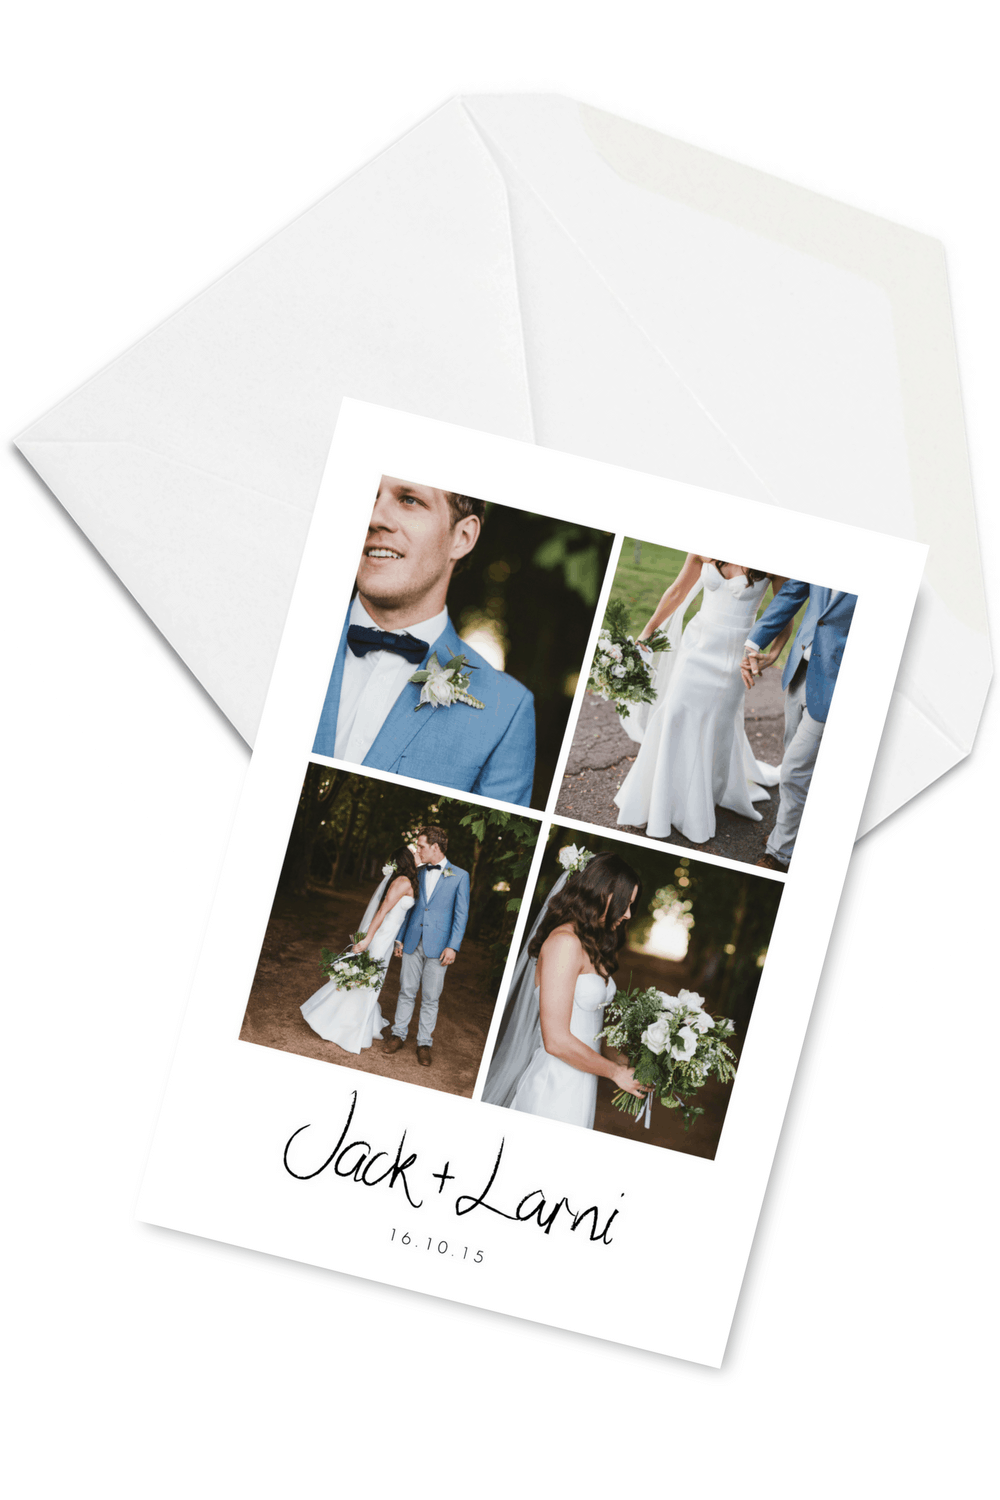 Wedding Thank You Card Simple Minimalistic